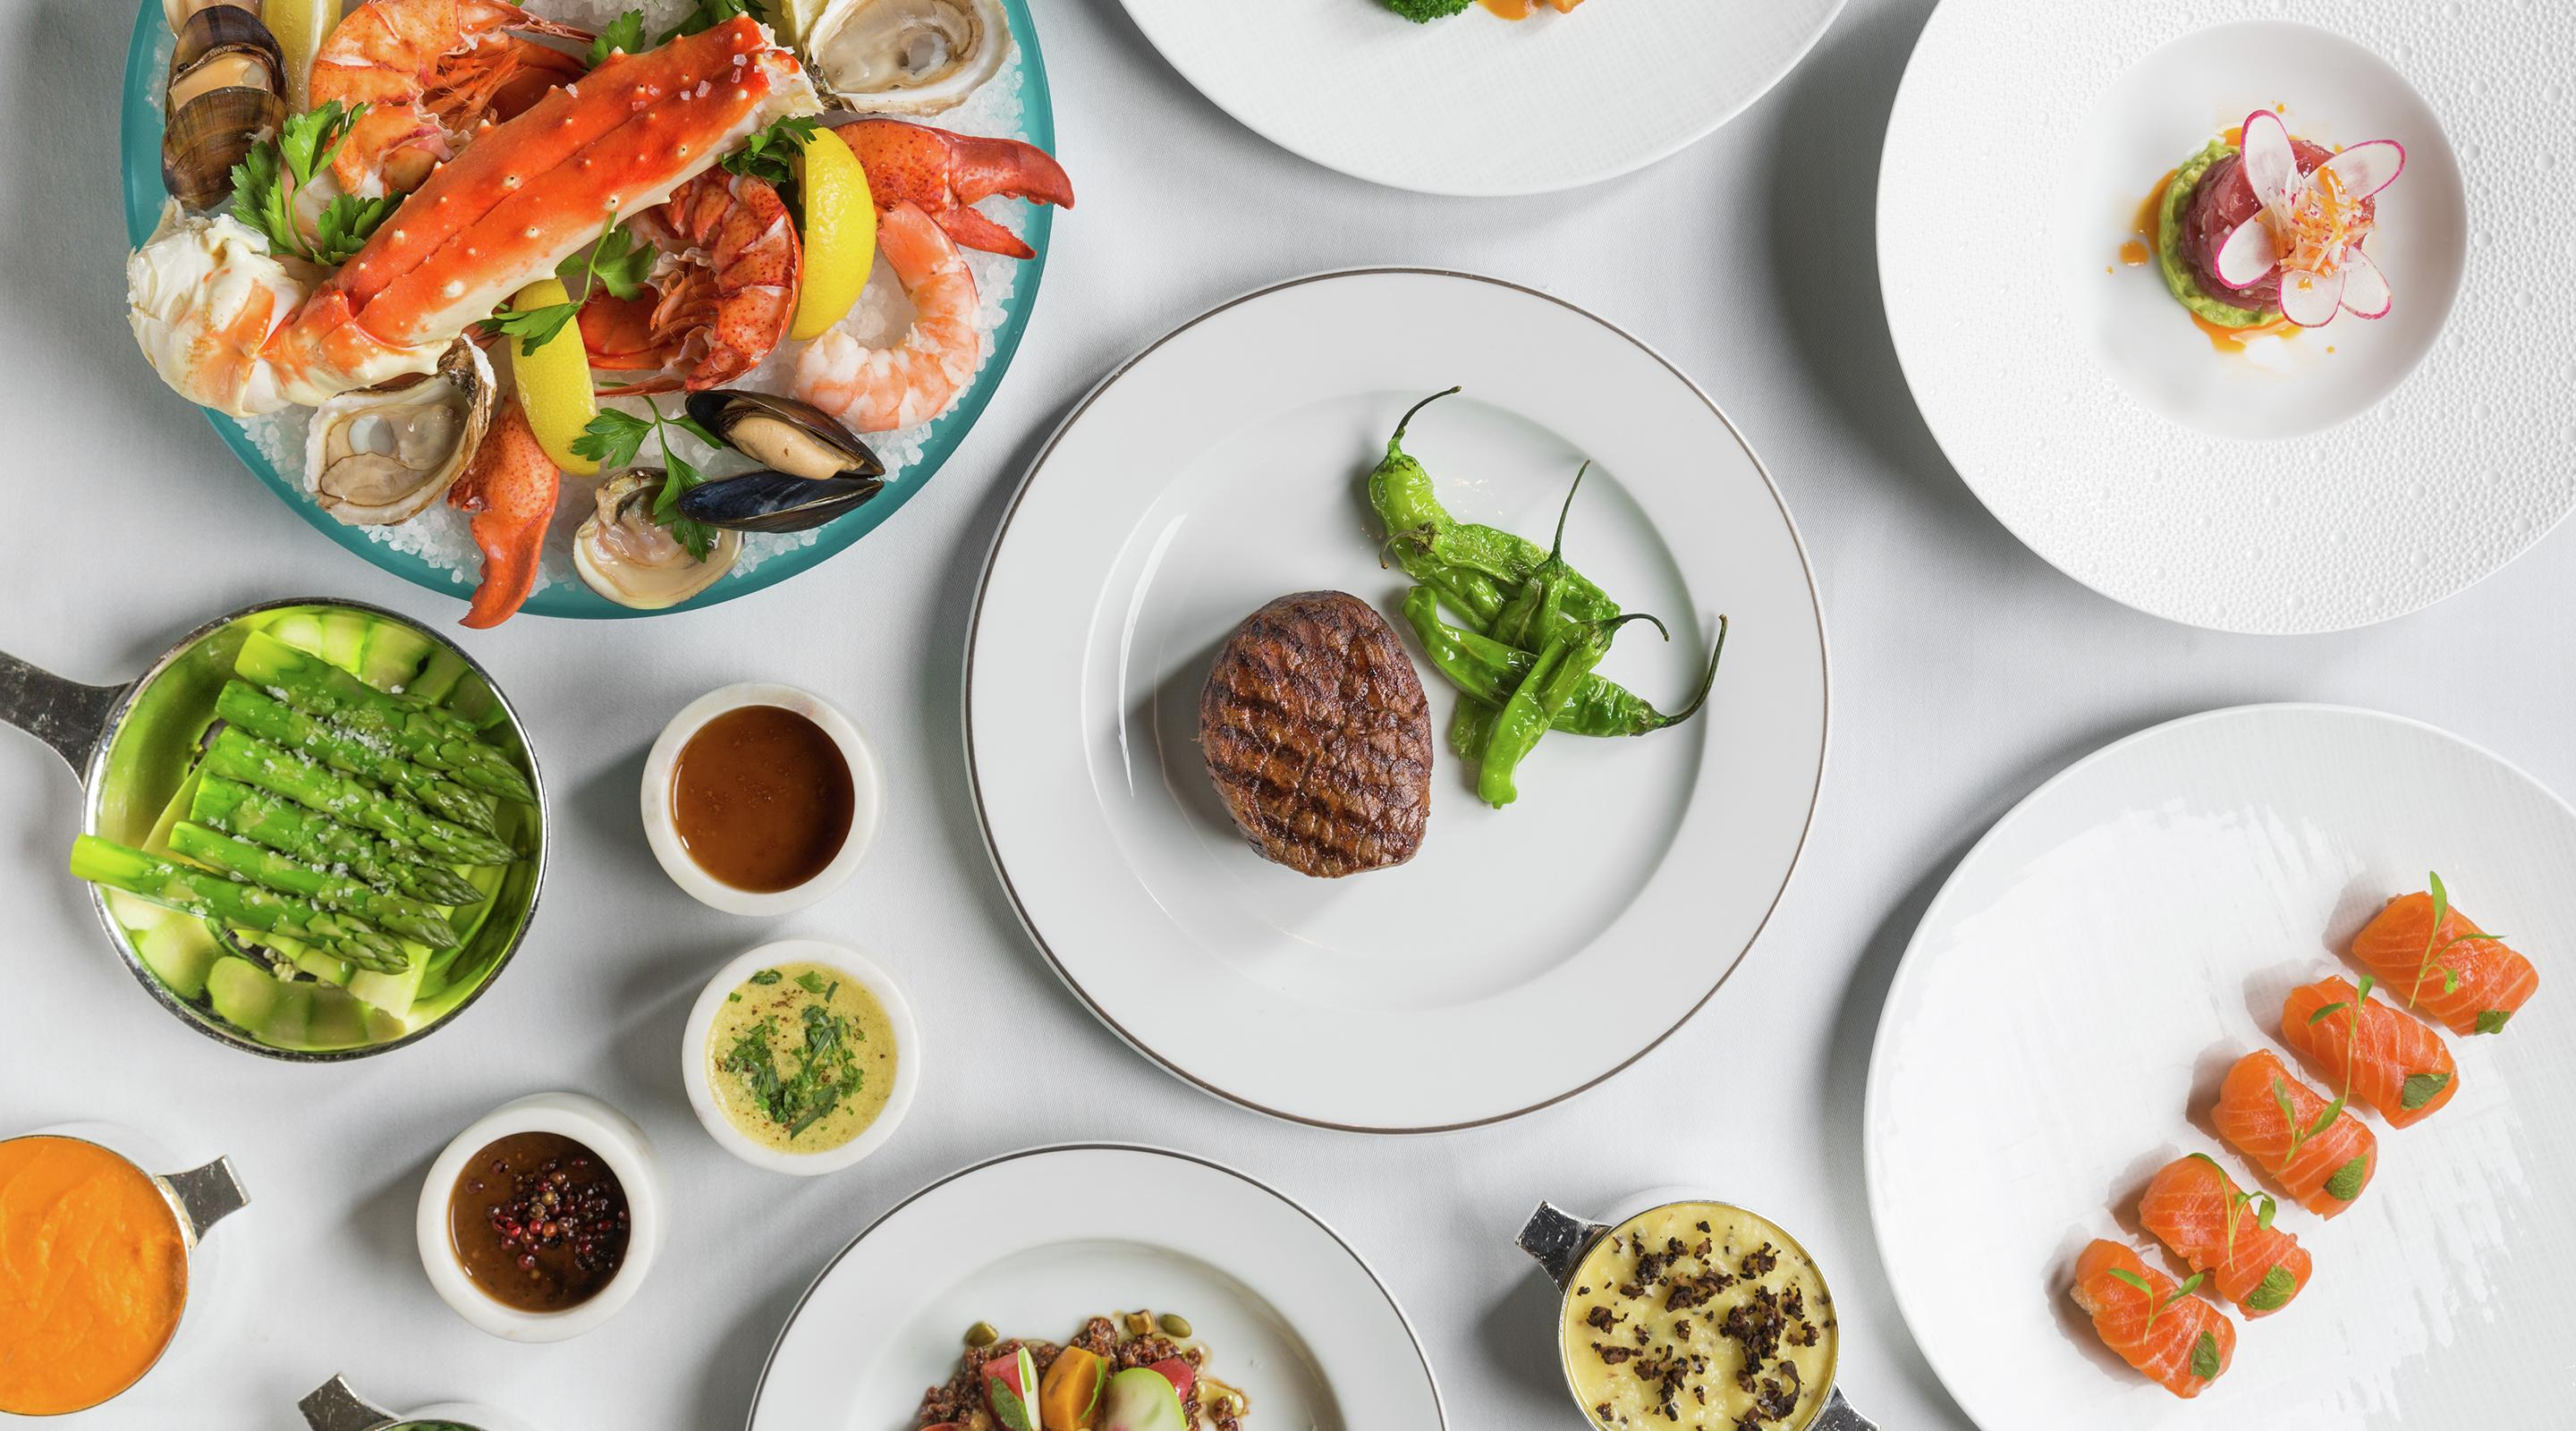 A classic steakhouse experience, starring prime meats and seafood.